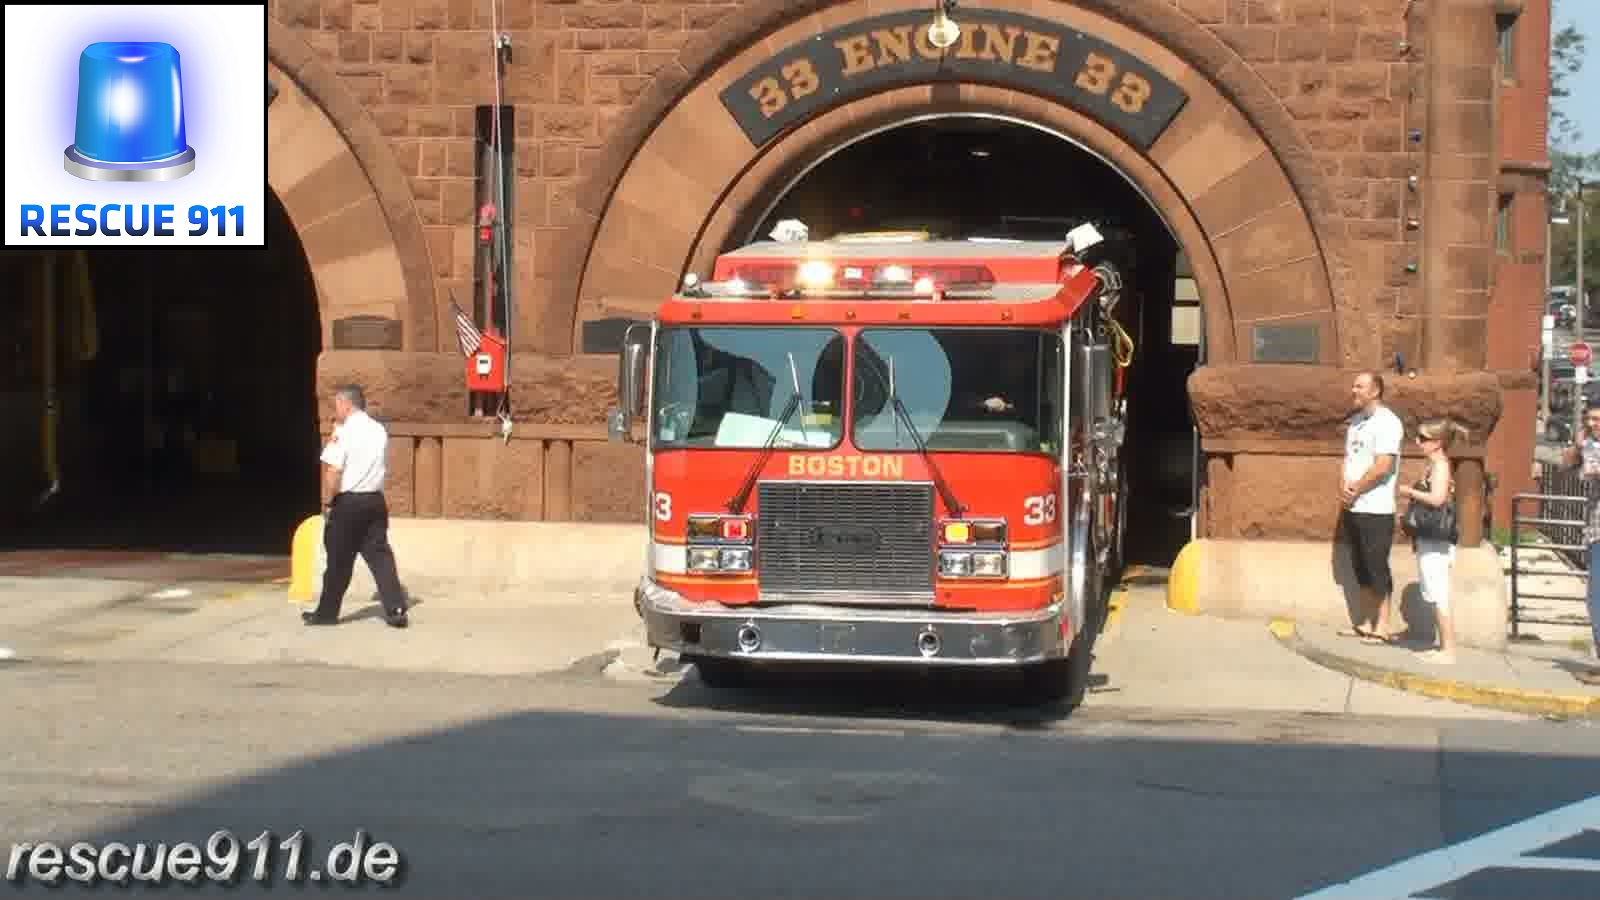 Engine 33 Boston Fire Department (stream)